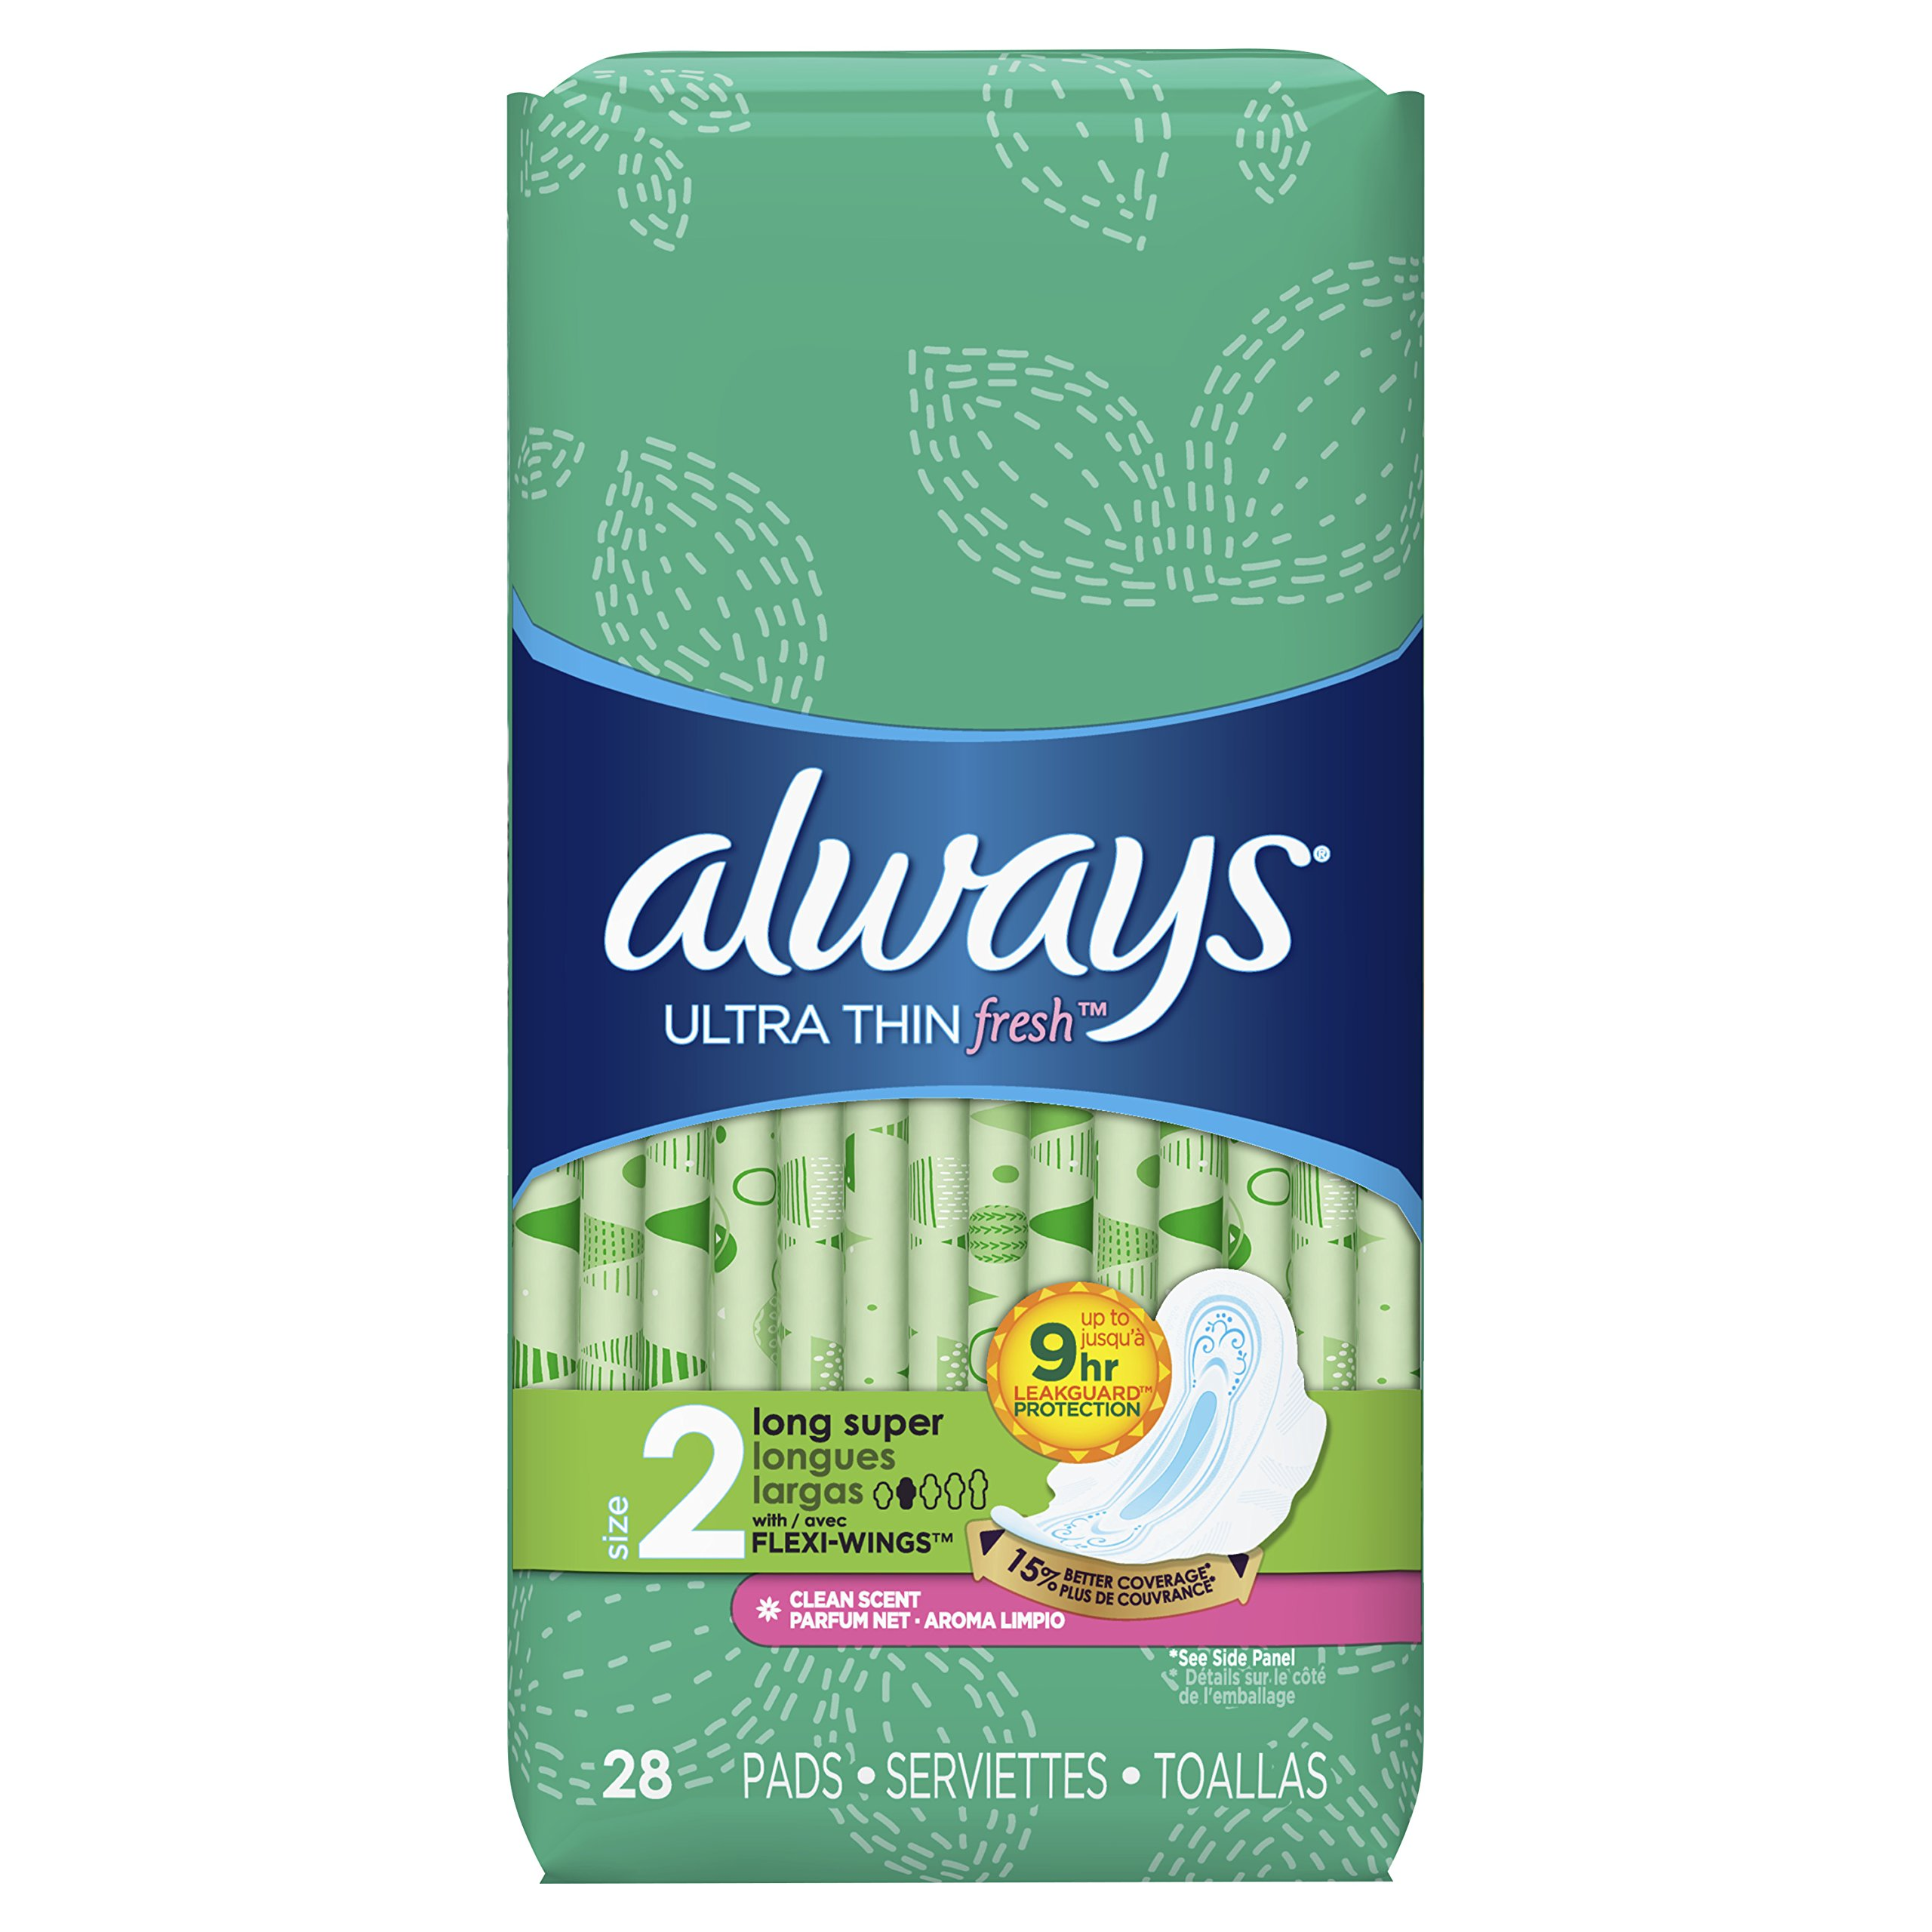 Always Ultra Thin Feminine Pads for Women, Size 2, Long, Super Absorbency, with Wings, Fresh Scented, 28 Count - Pack of 6 (168 Count Total)